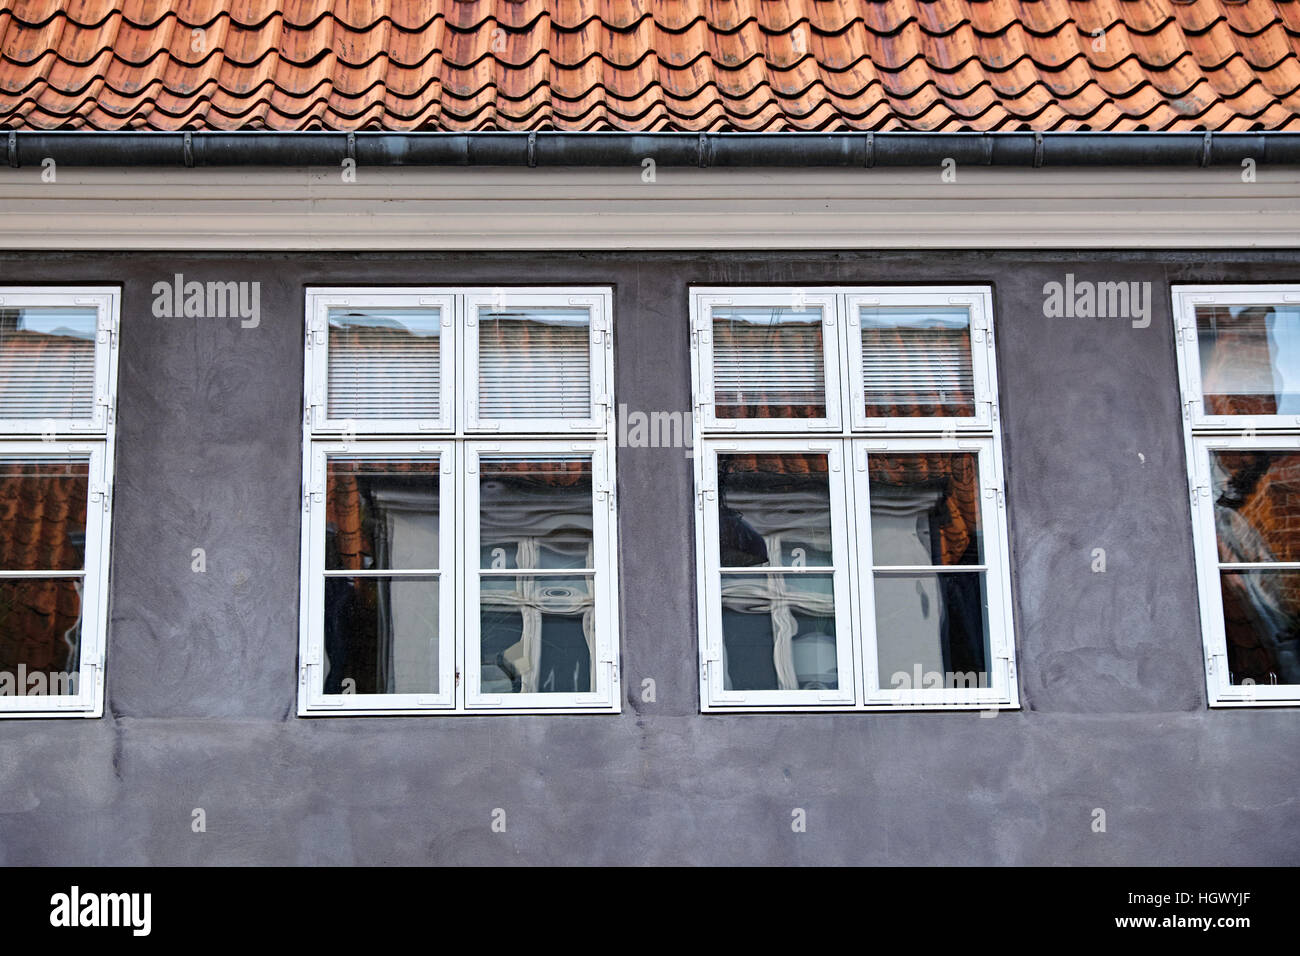 Gray plastered facade with white painted double casement windows, of wood, above is a roof with red clay tiles and - Stock Image